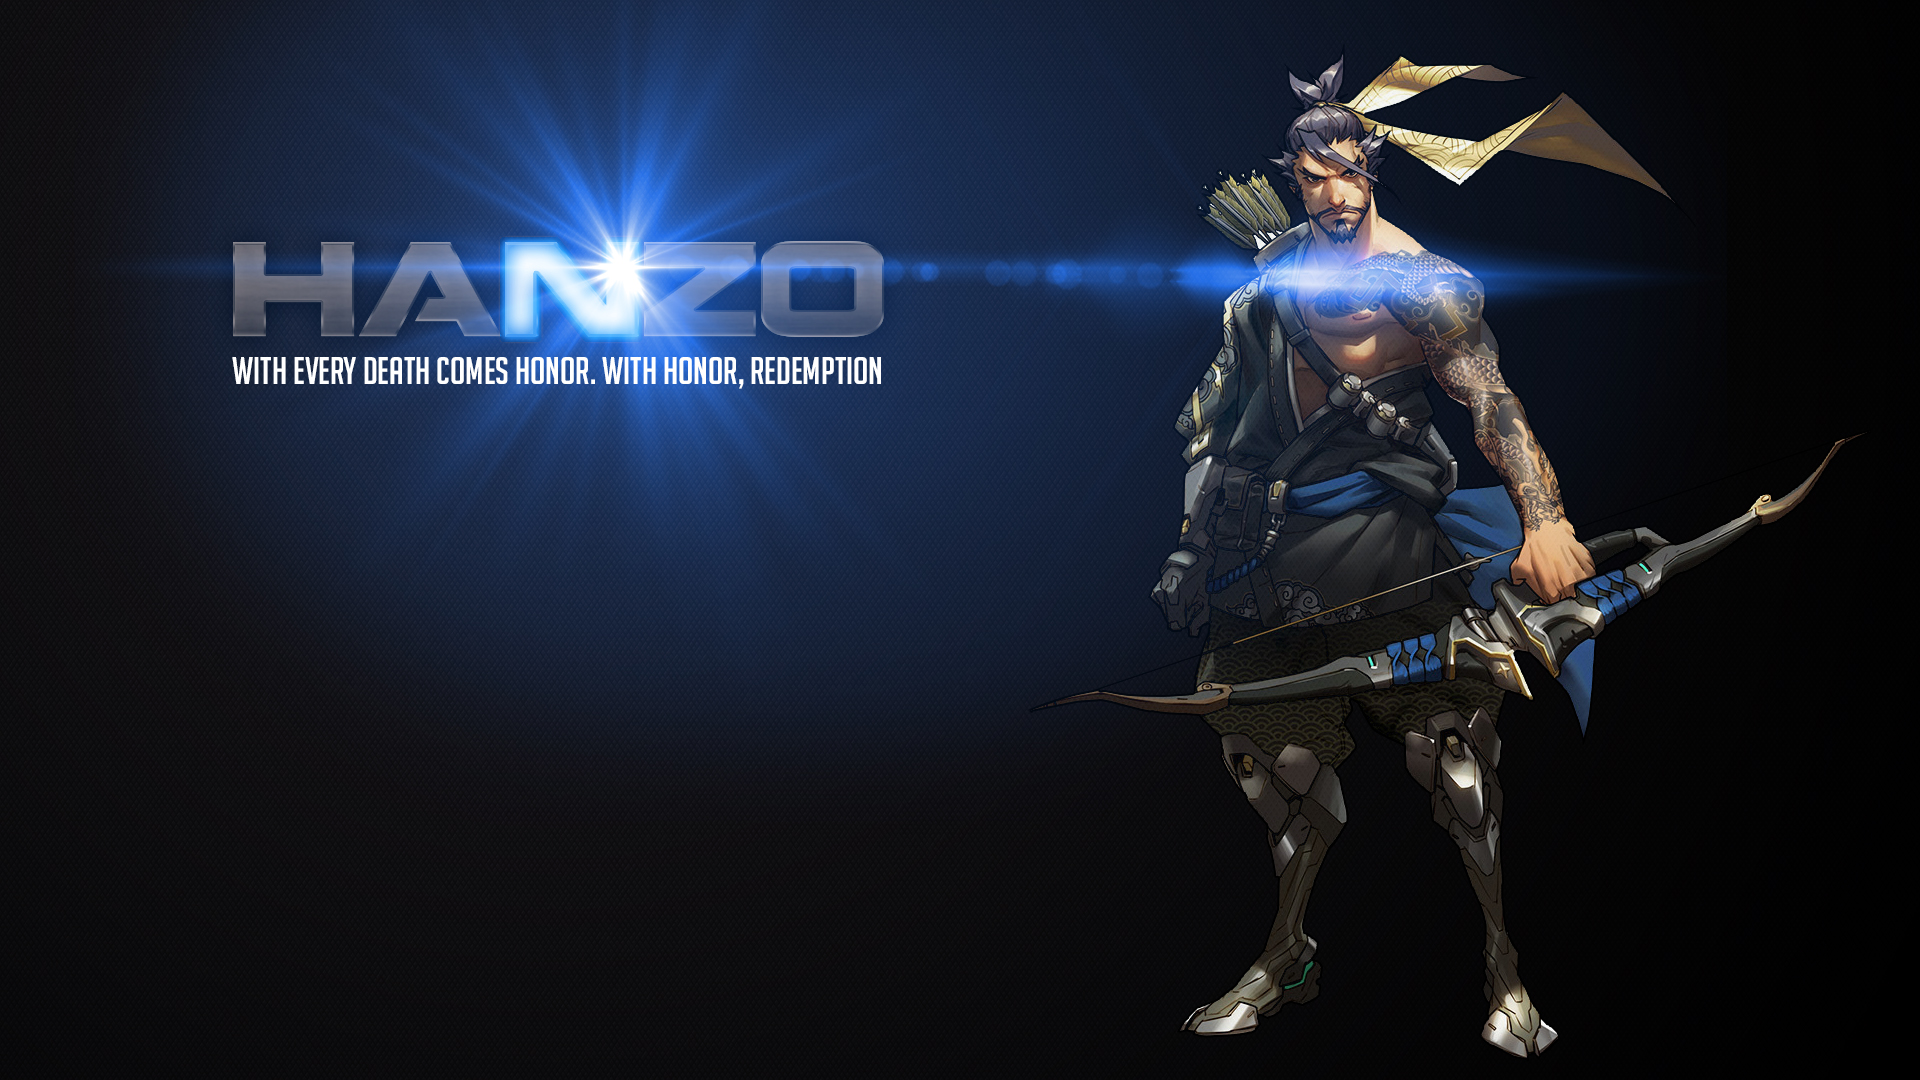 overwatch full hd wallpaper and background | 1920x1080 | id:704018